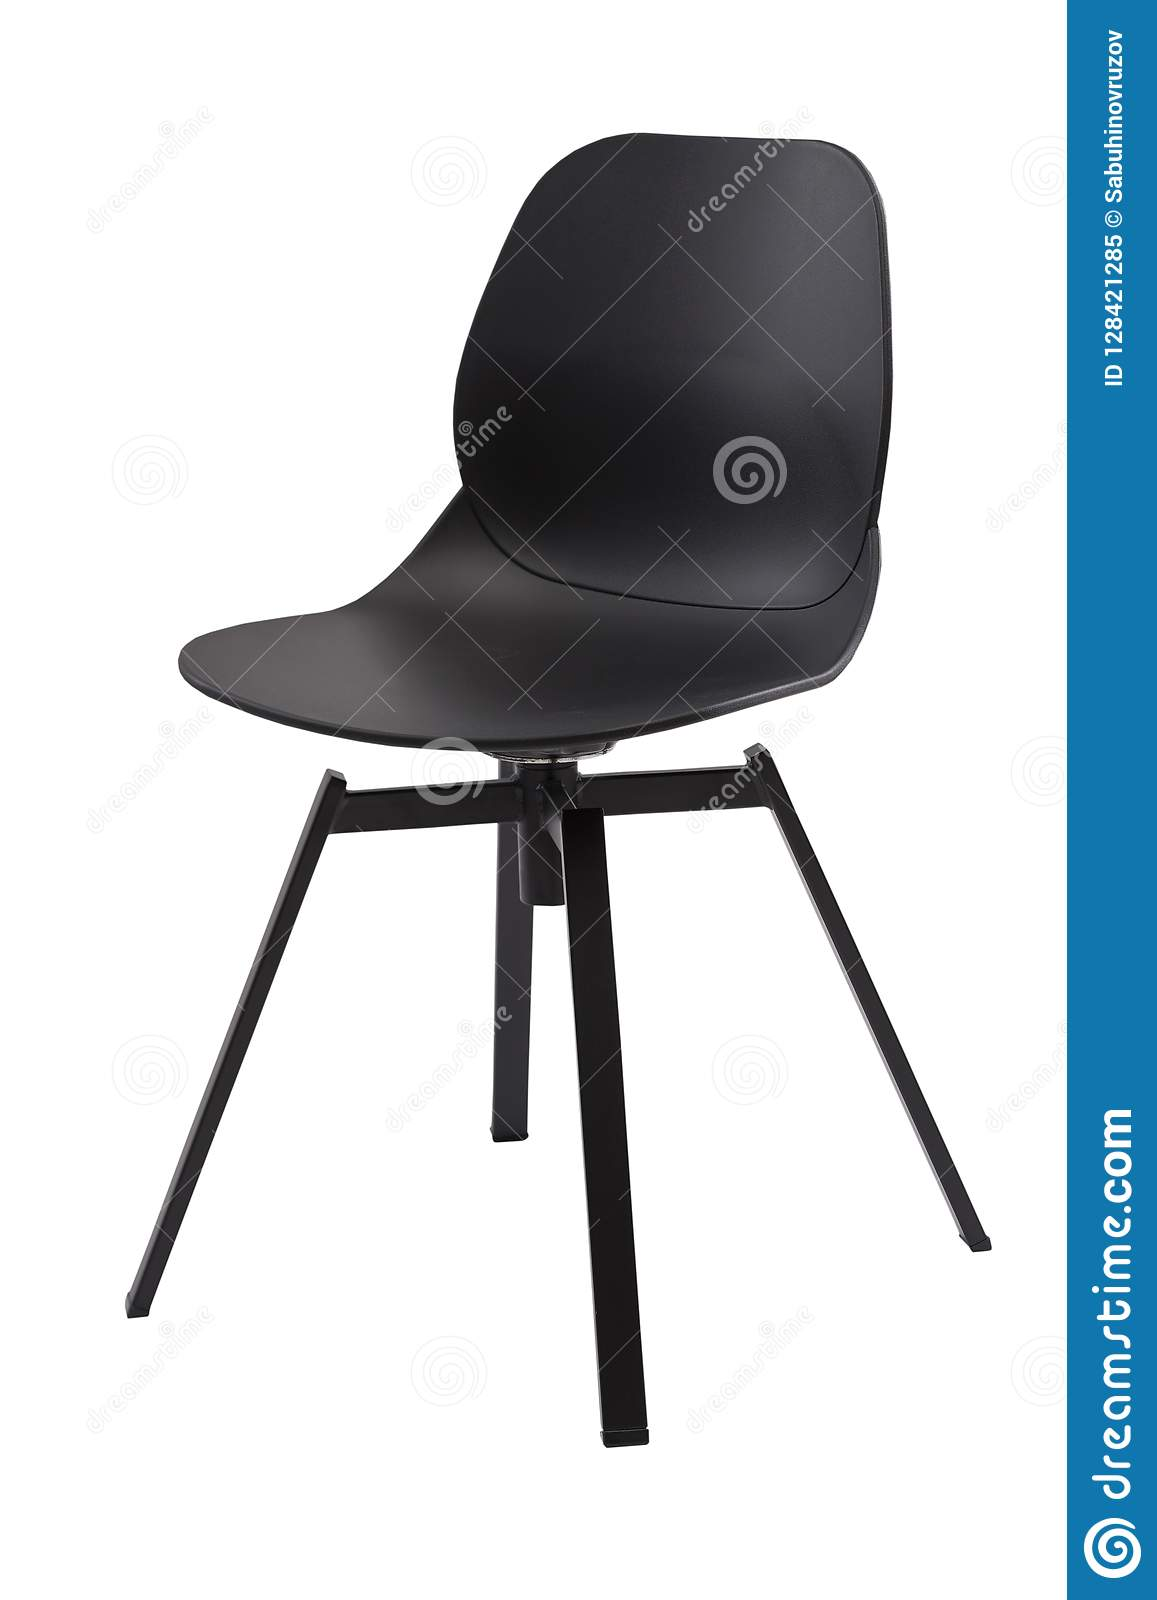 Standart Black Office Plastic Chair Isolated On White. Simple